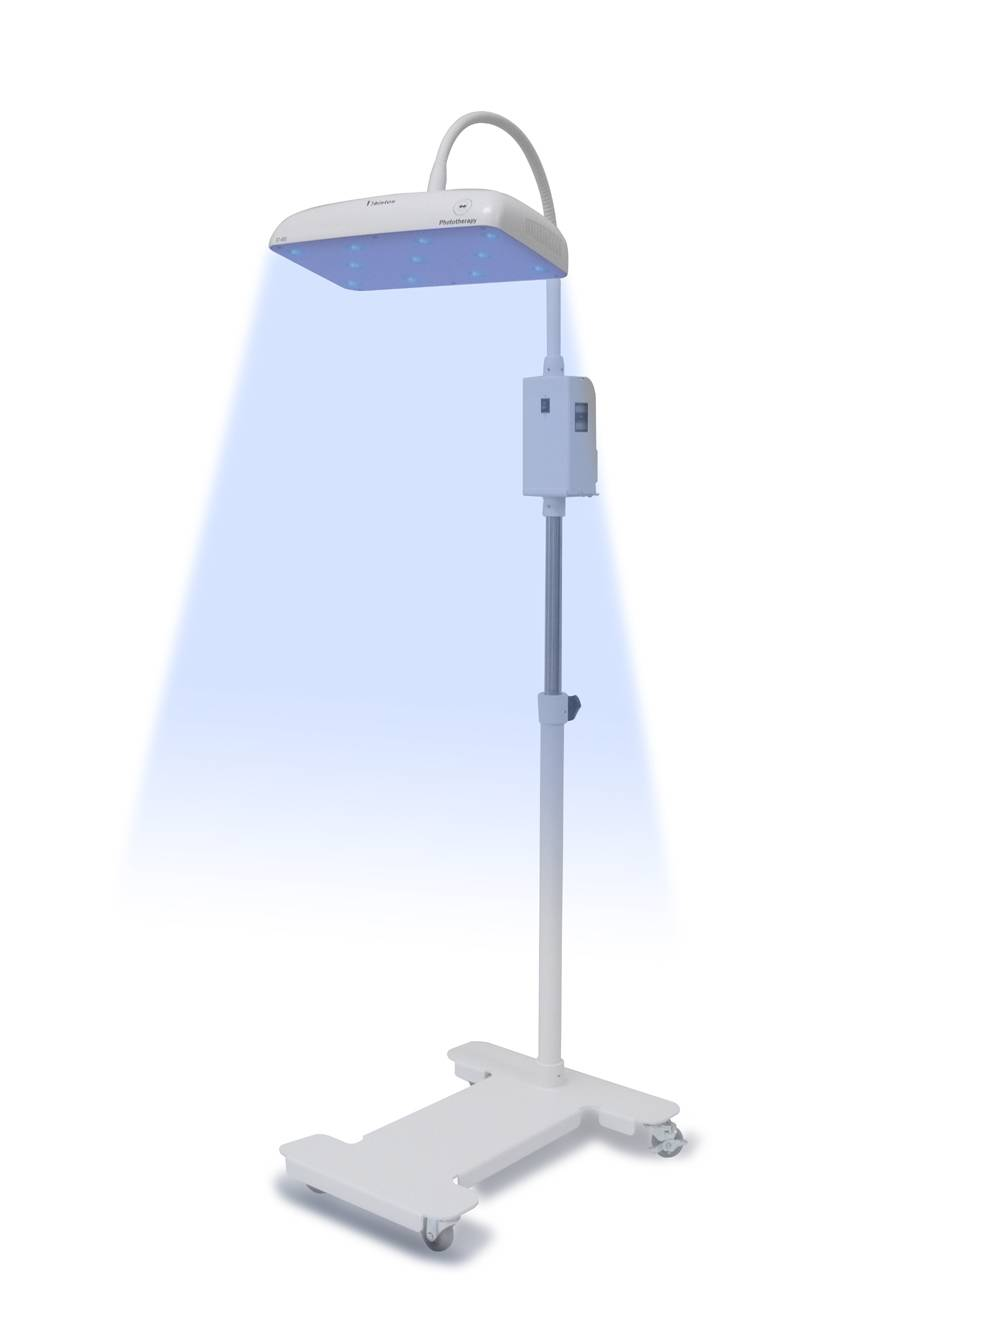 Medical Obstetrics & Gynecology Equipment, Infant Phototherapy BT-400